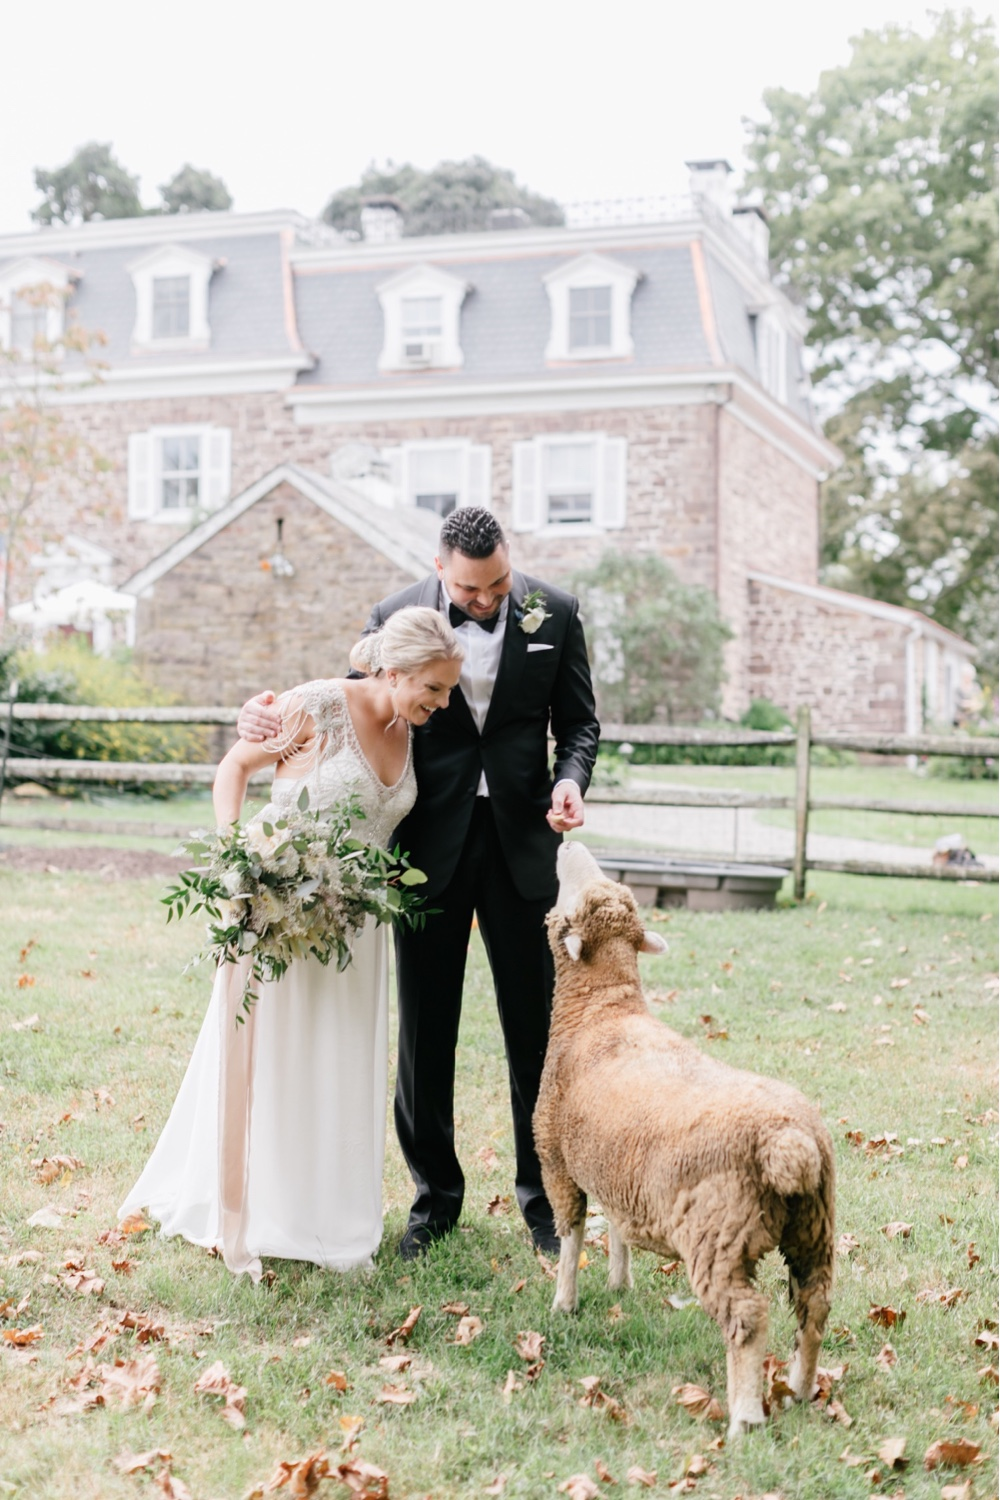 210 Woolverton Inn Woolverton Inn Wedding Boho Chic Wedding Gown